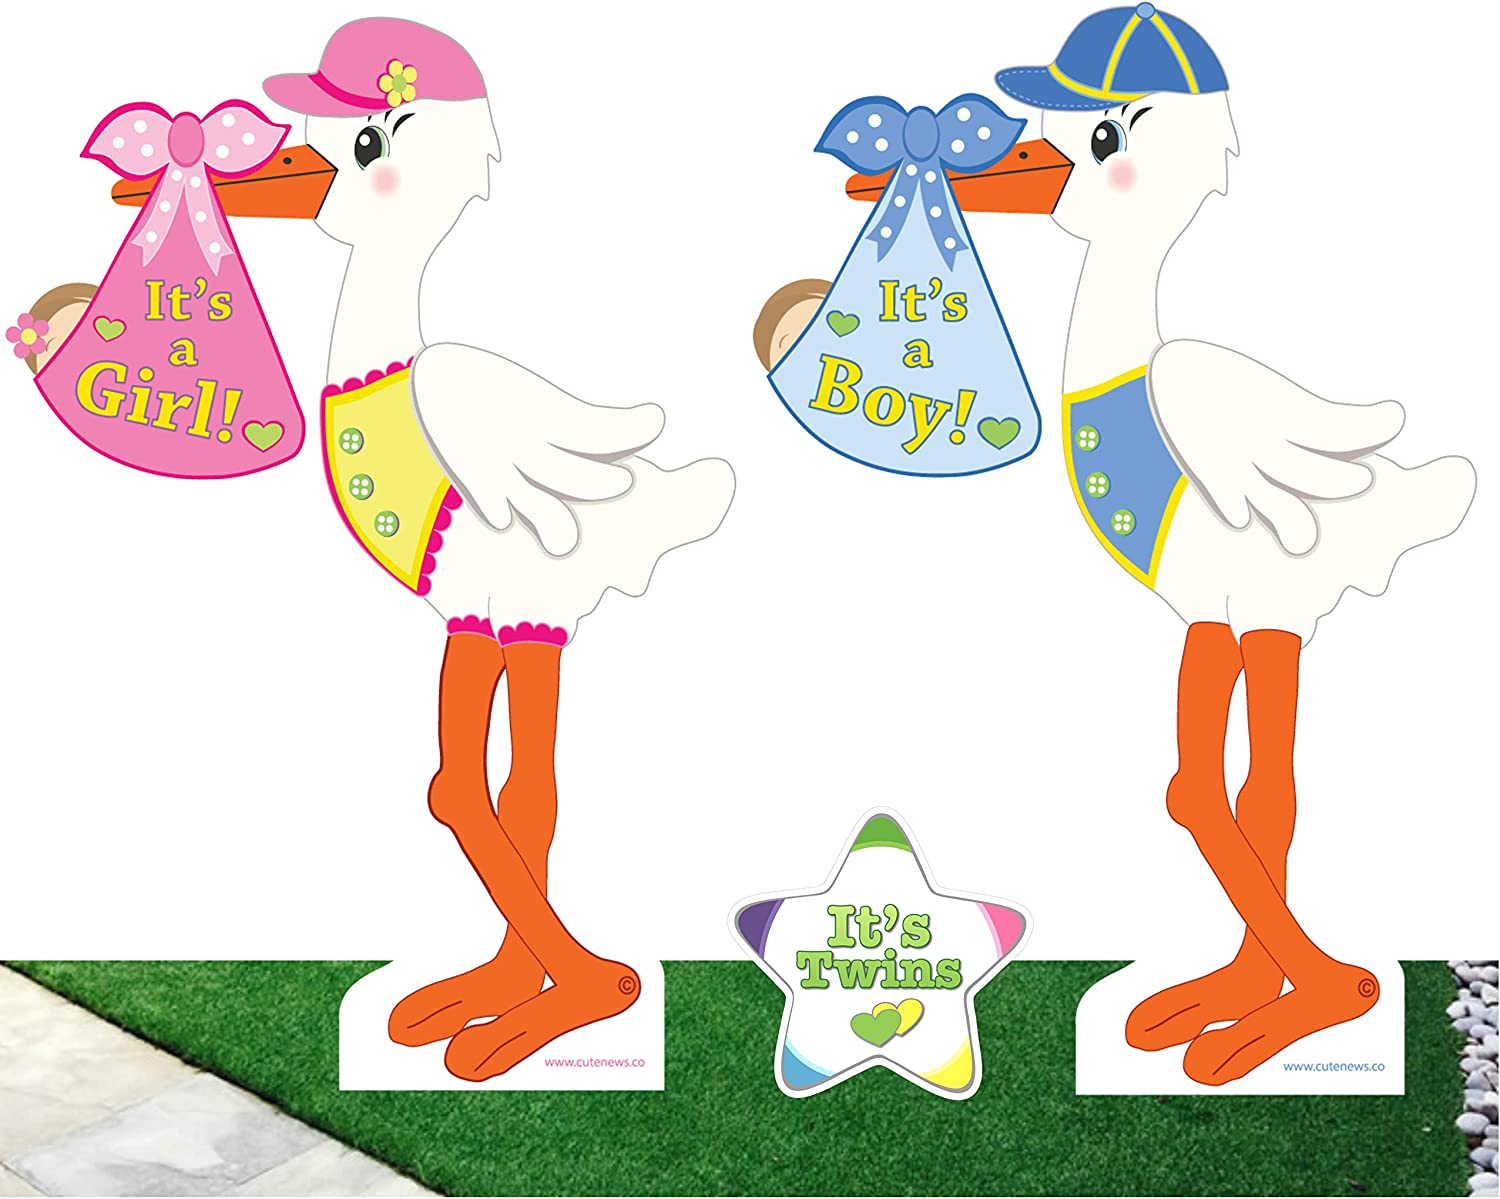 Cute News Outdoor Twin Stork Baby Yard Signs and It's Twins Star Announcement - Welcome Home Newborn and Shower Party Lawn Decor - Boy and Girl Birth Decoration Gifts - Pink and Blue - 4 Feet Tall